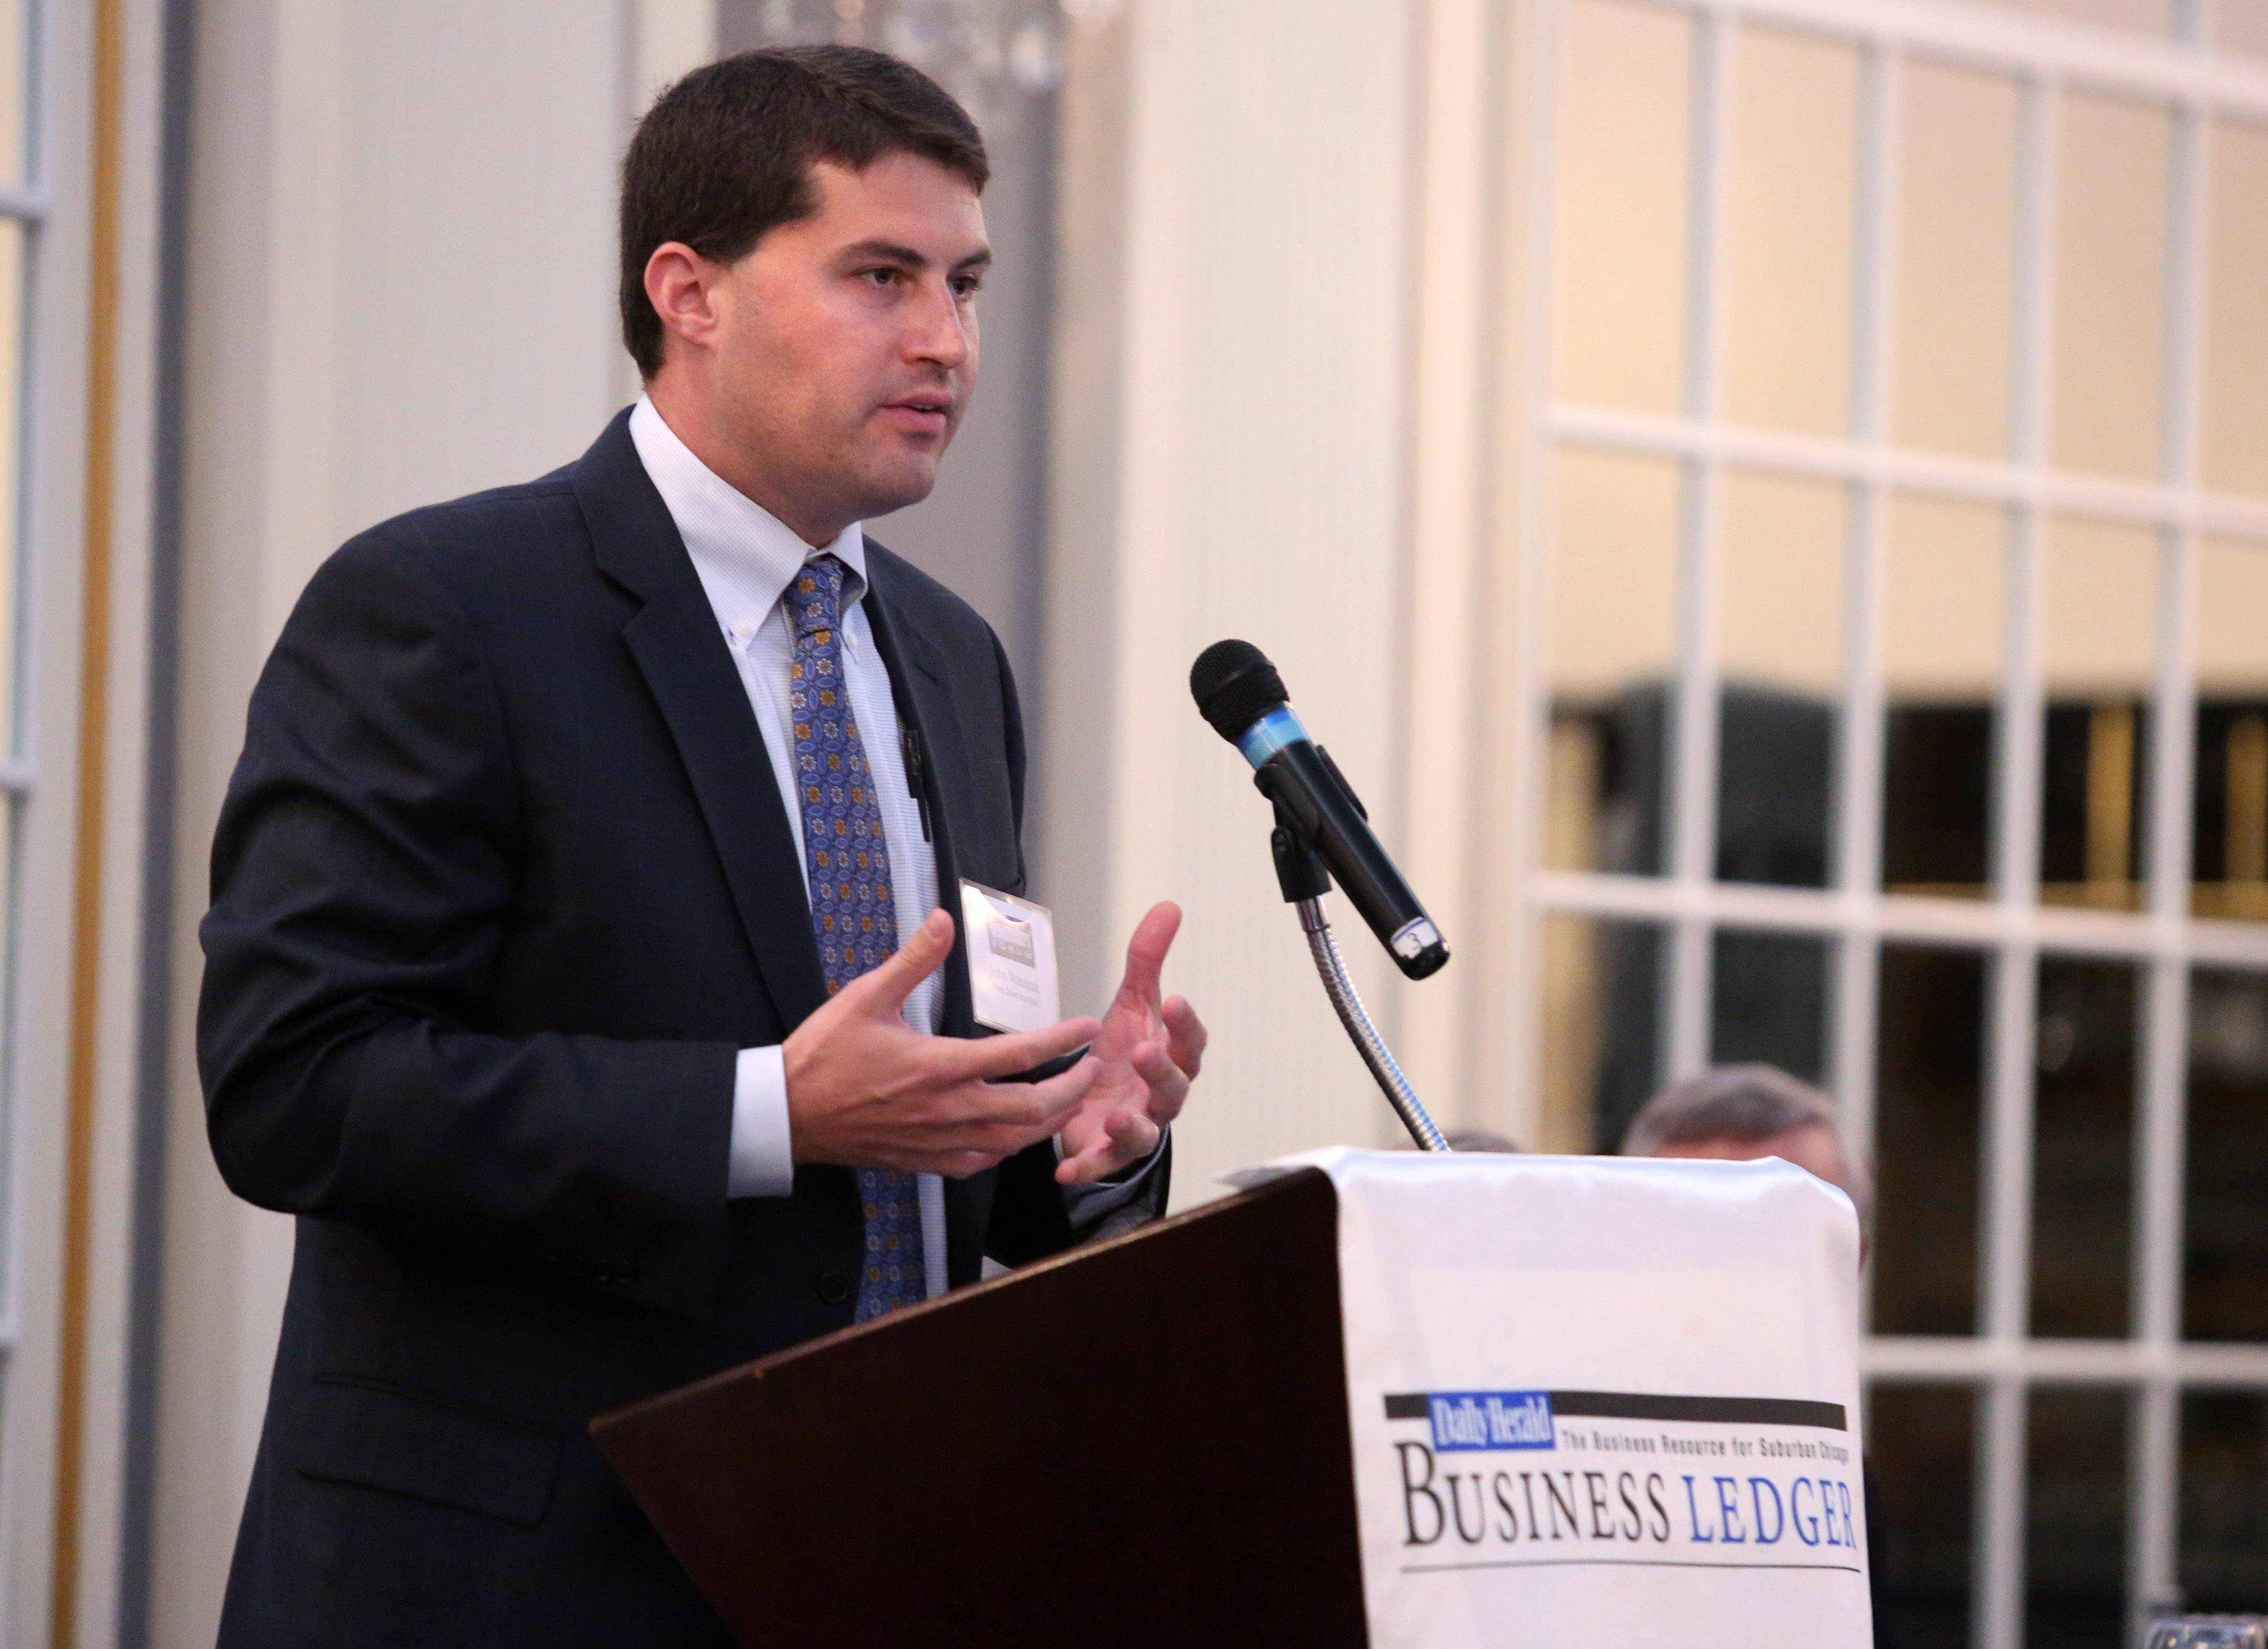 John Matejcak, vice president with First American Bank Wealth Management Group, speaks at the Daily Herald Business Ledger Newsmakers' Forum on Family Business Thursday at European Crystal Banquets in Arlington Heights.